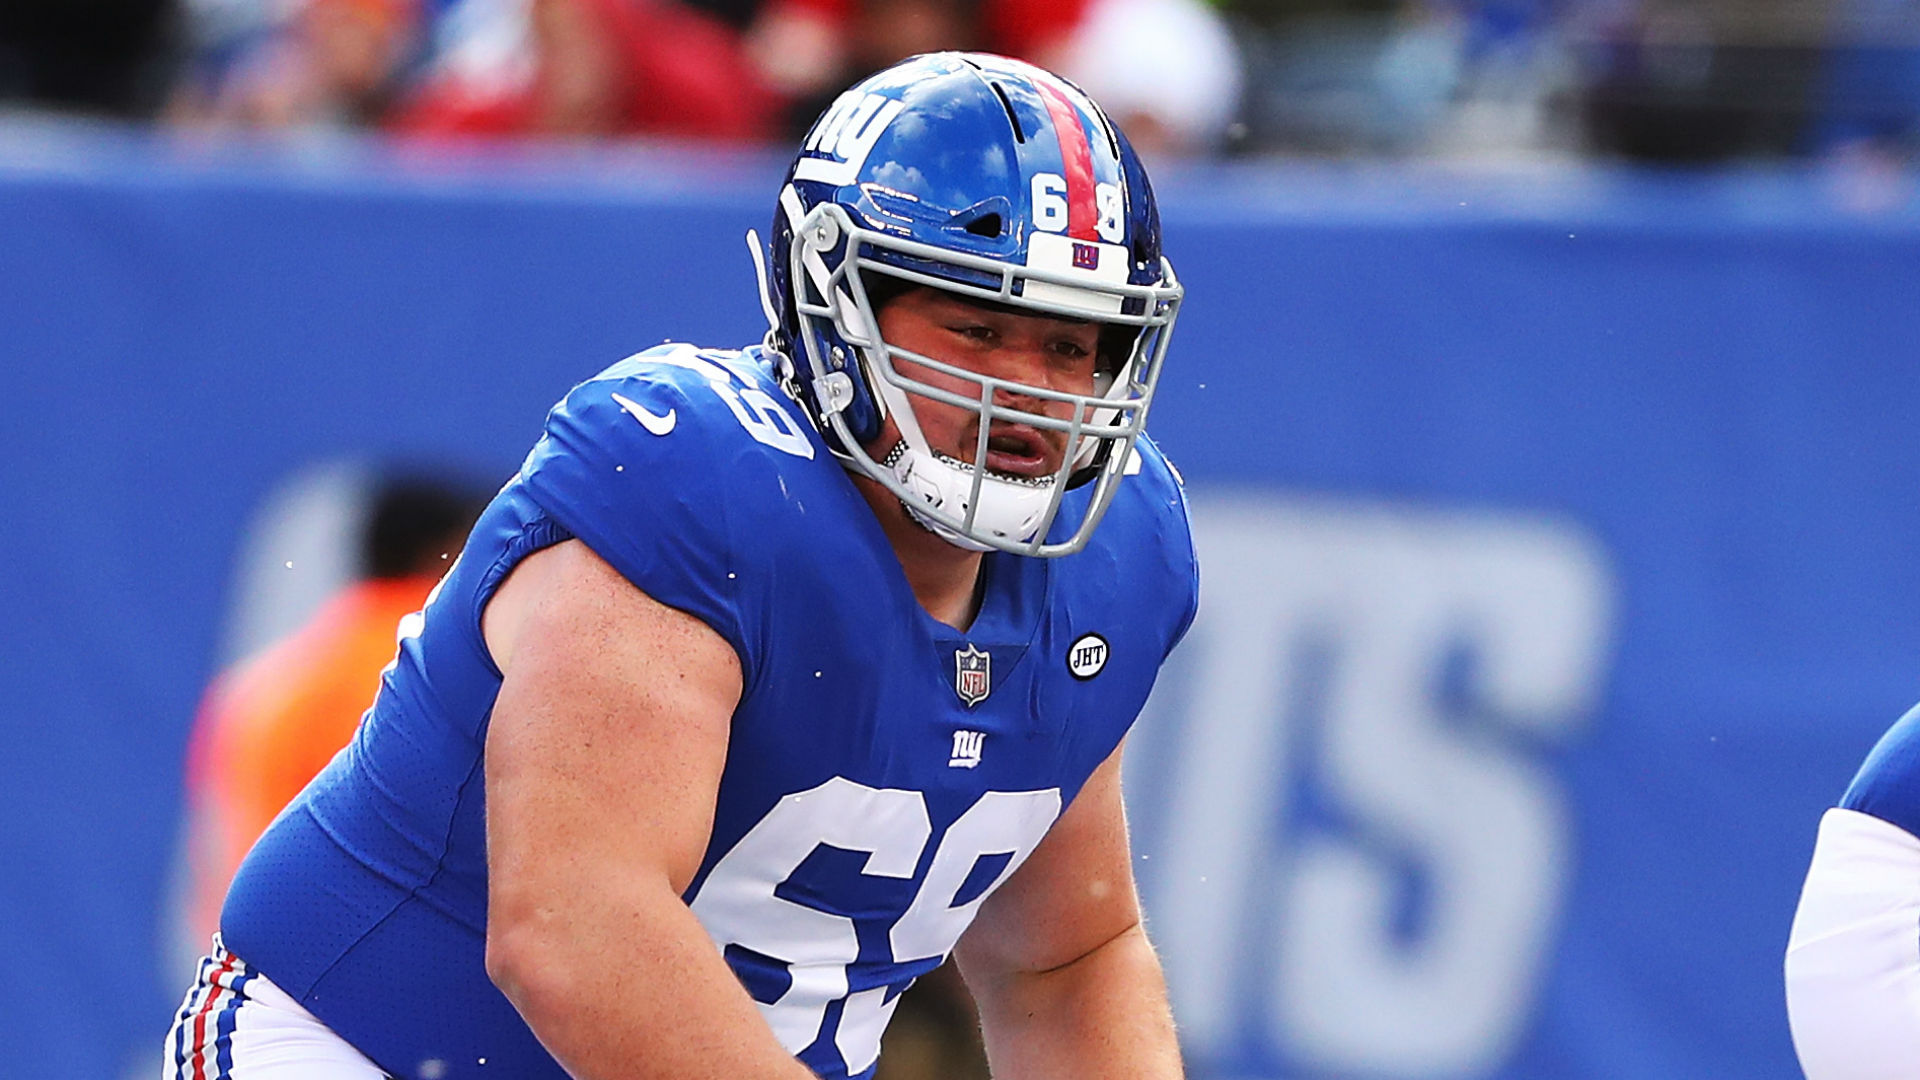 Giants trade offensive lineman to the Vikings